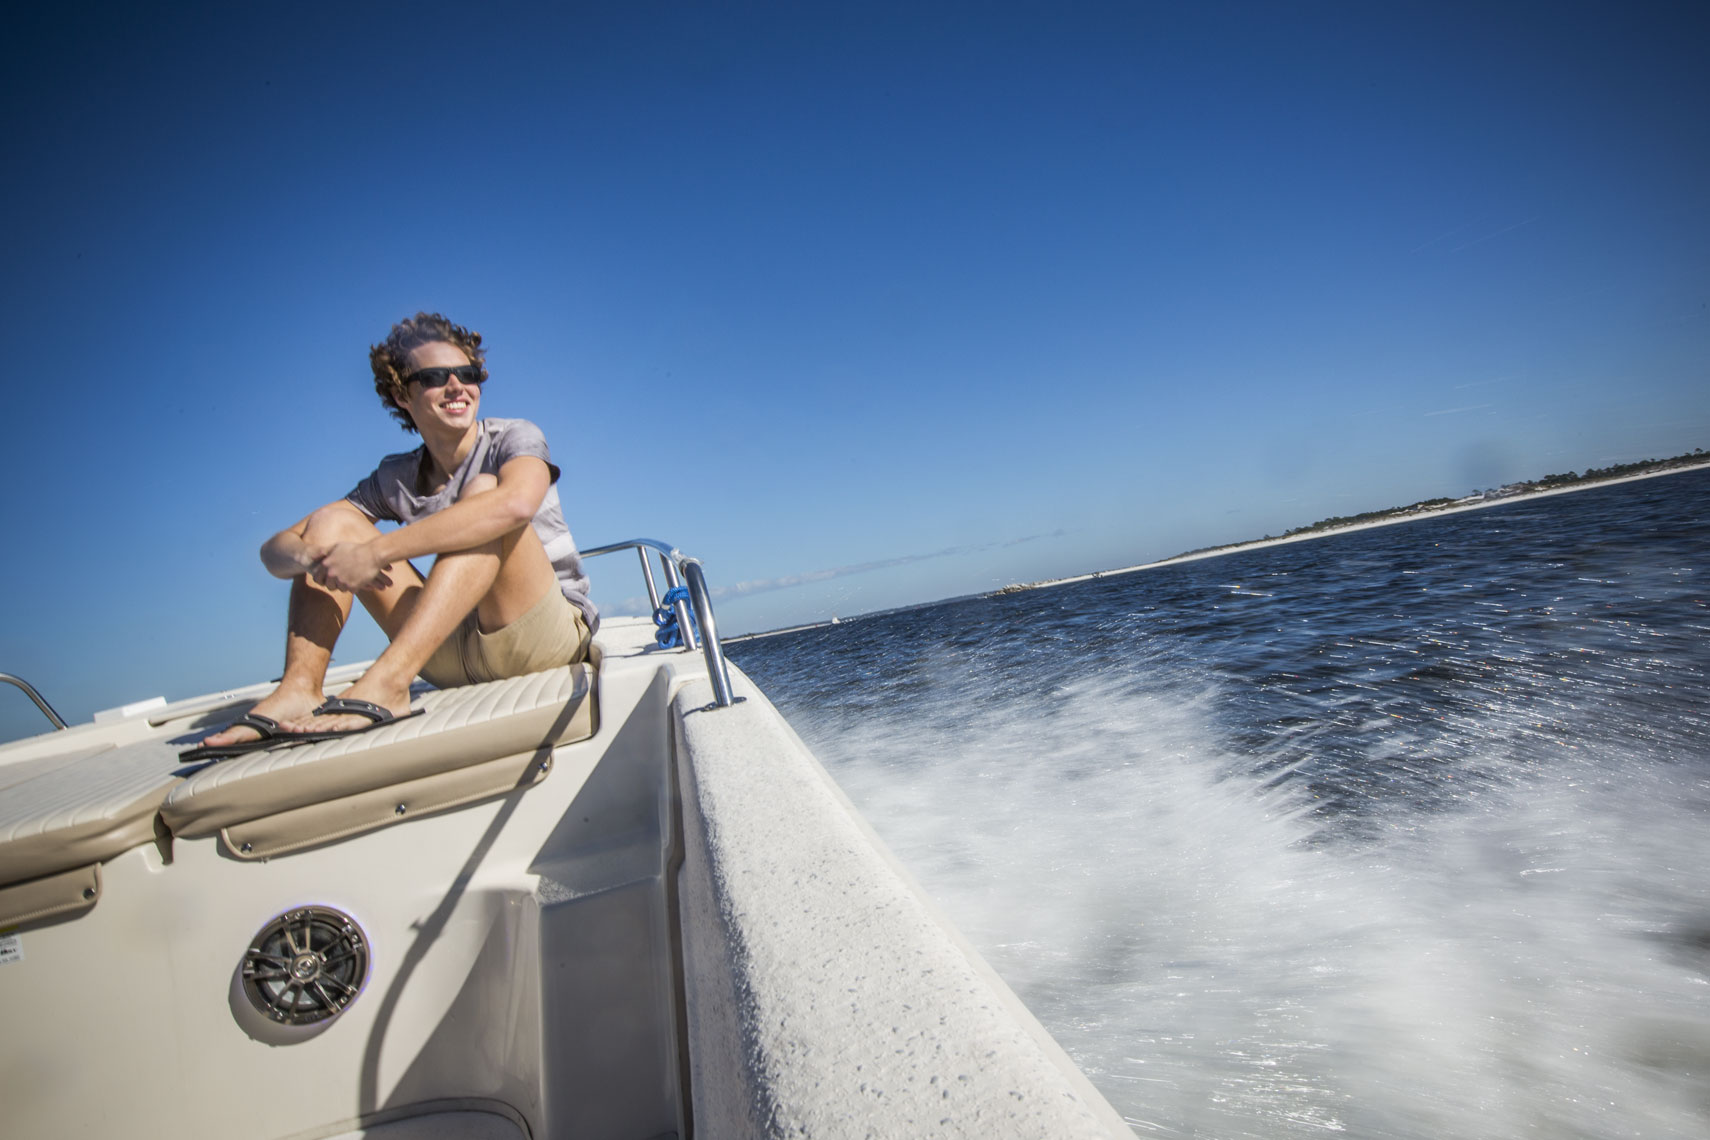 Young man in Boat